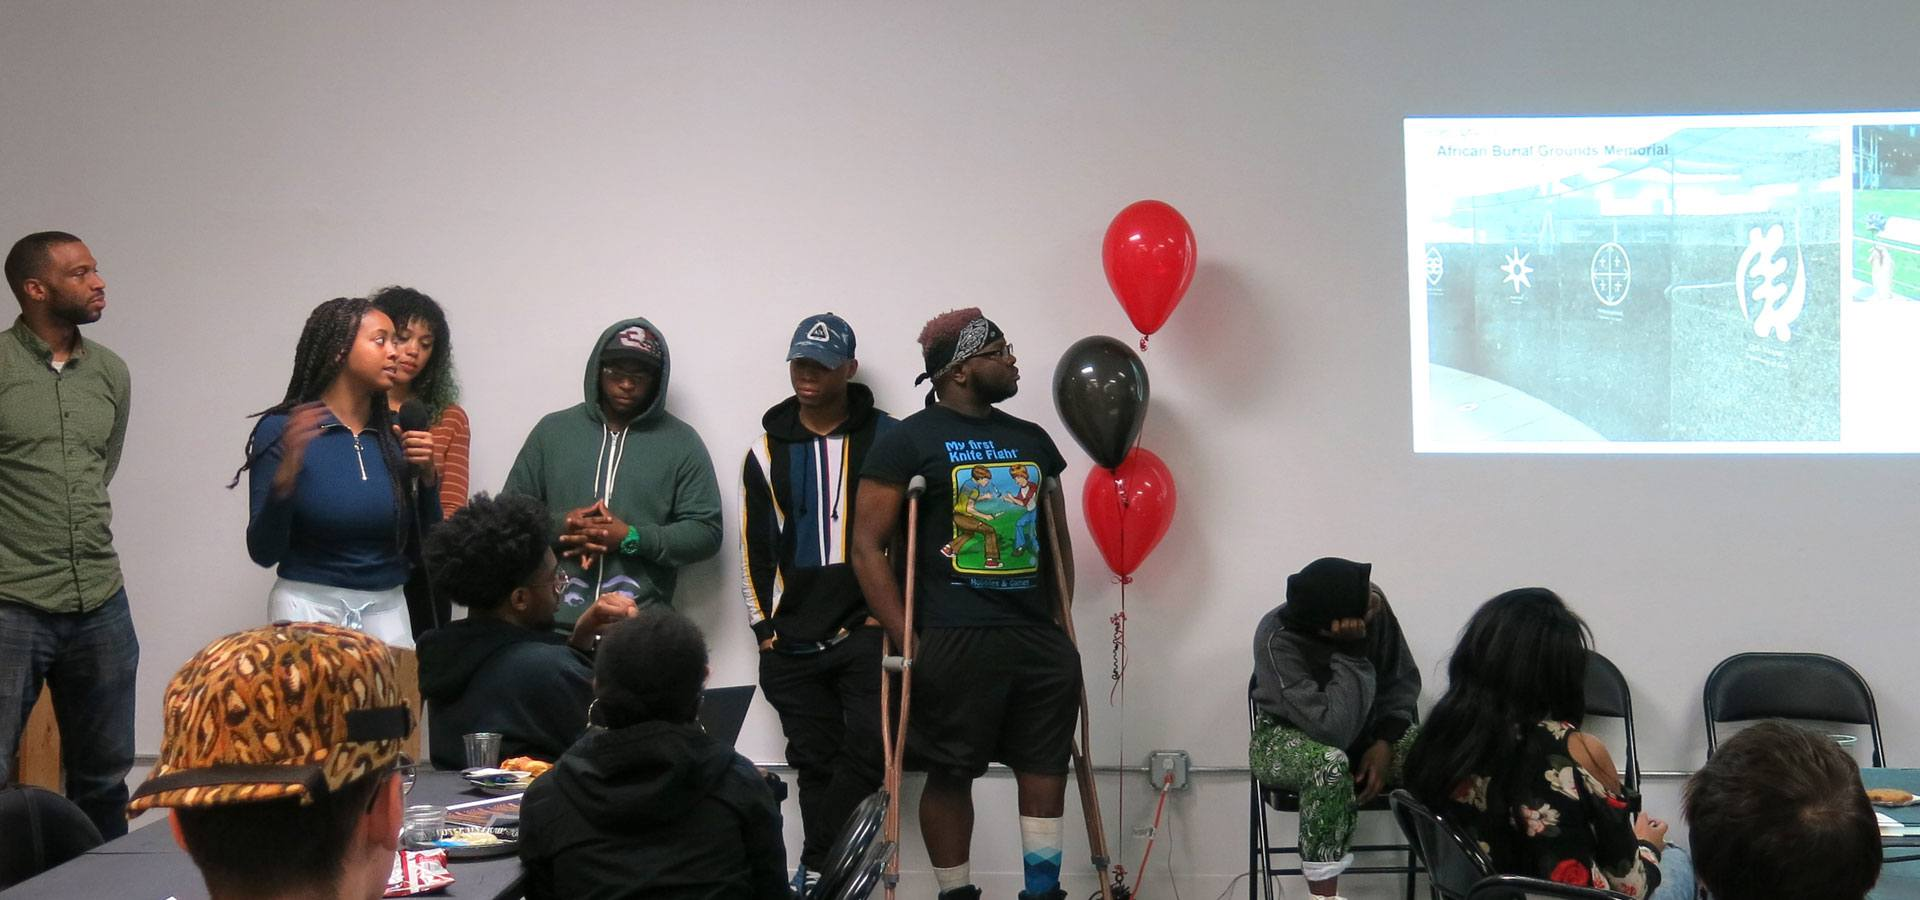 Several young people giving a presentation about a trip to new york city